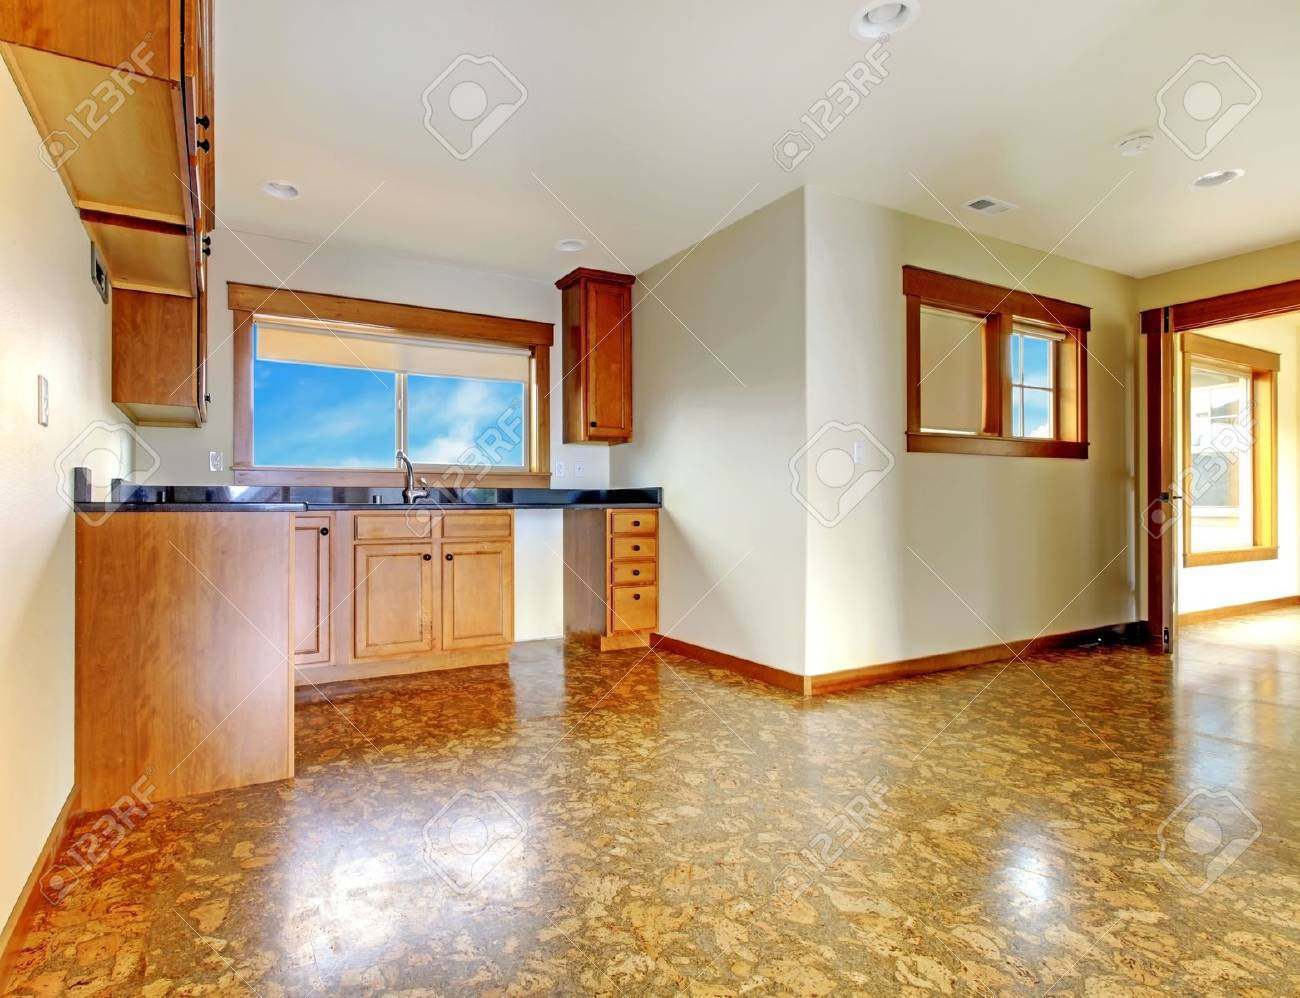 Small Kitche In Mother In Low Apartment Above Garage New Luxury Stock Photo Picture And Royalty Free Image Image 18283804